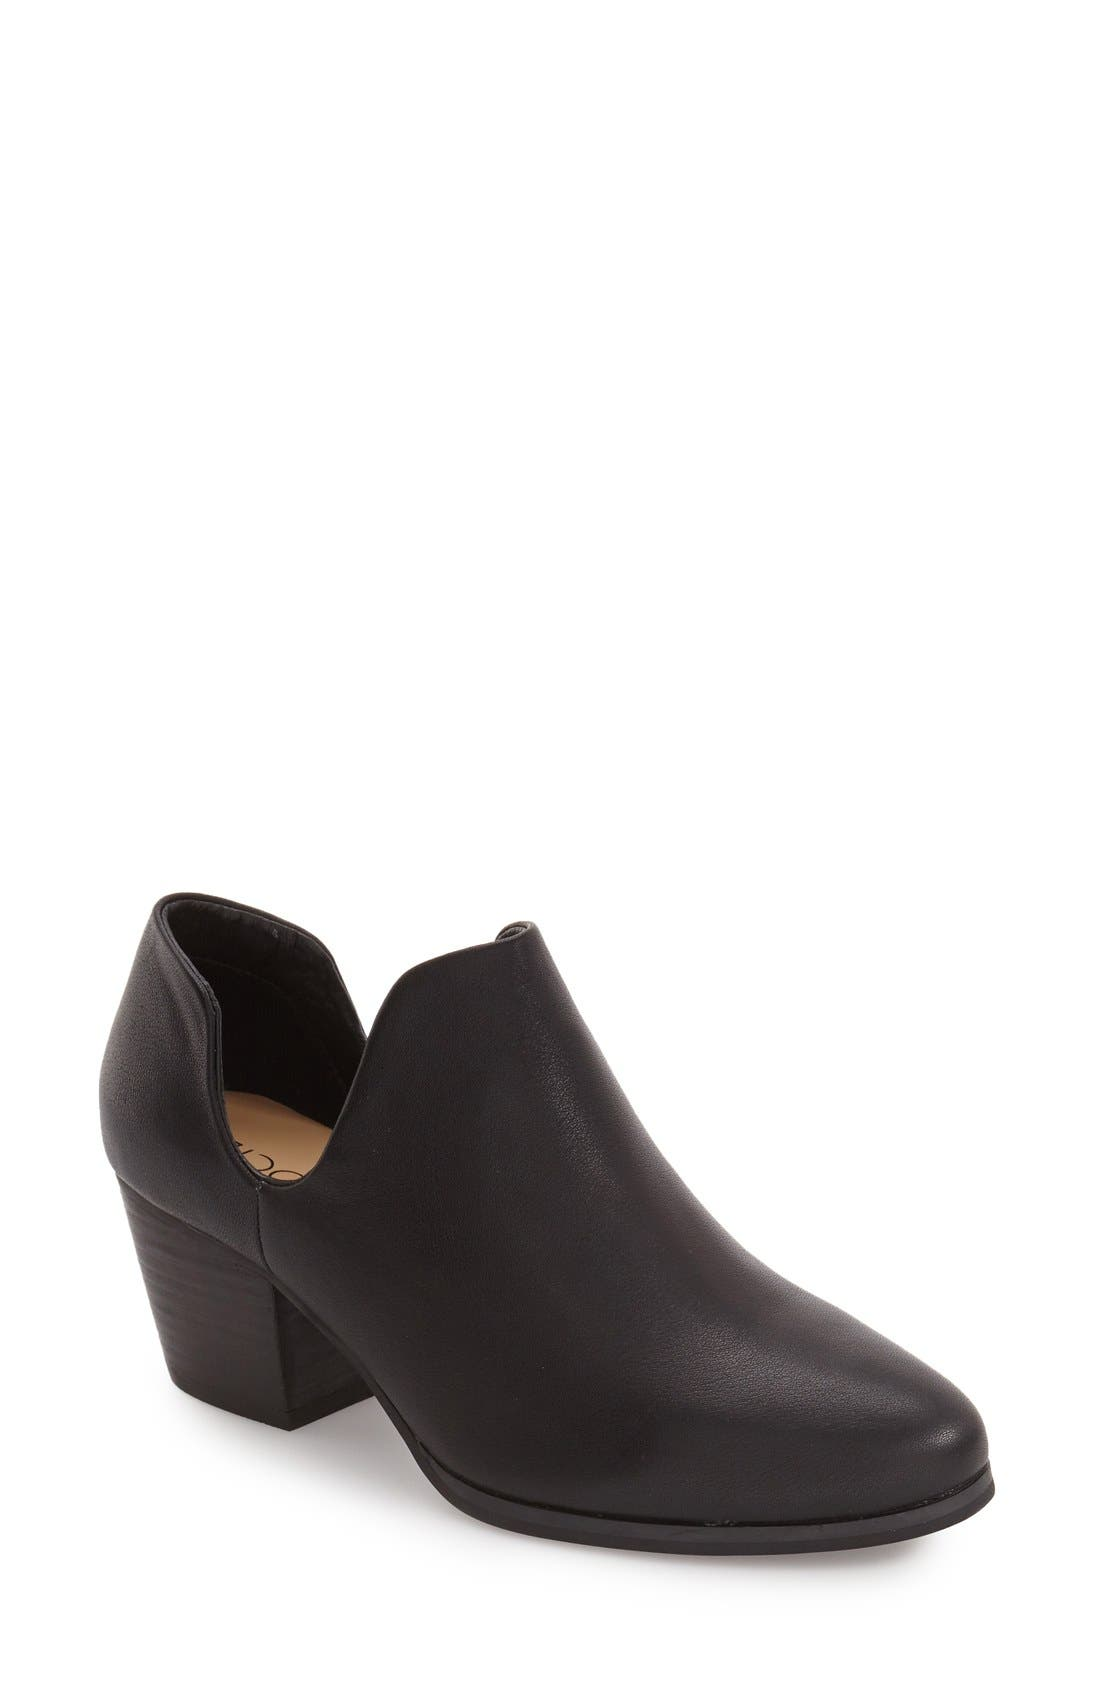 Alternate Image 1 Selected - Sole Society 'Carerra' Bootie (Women)